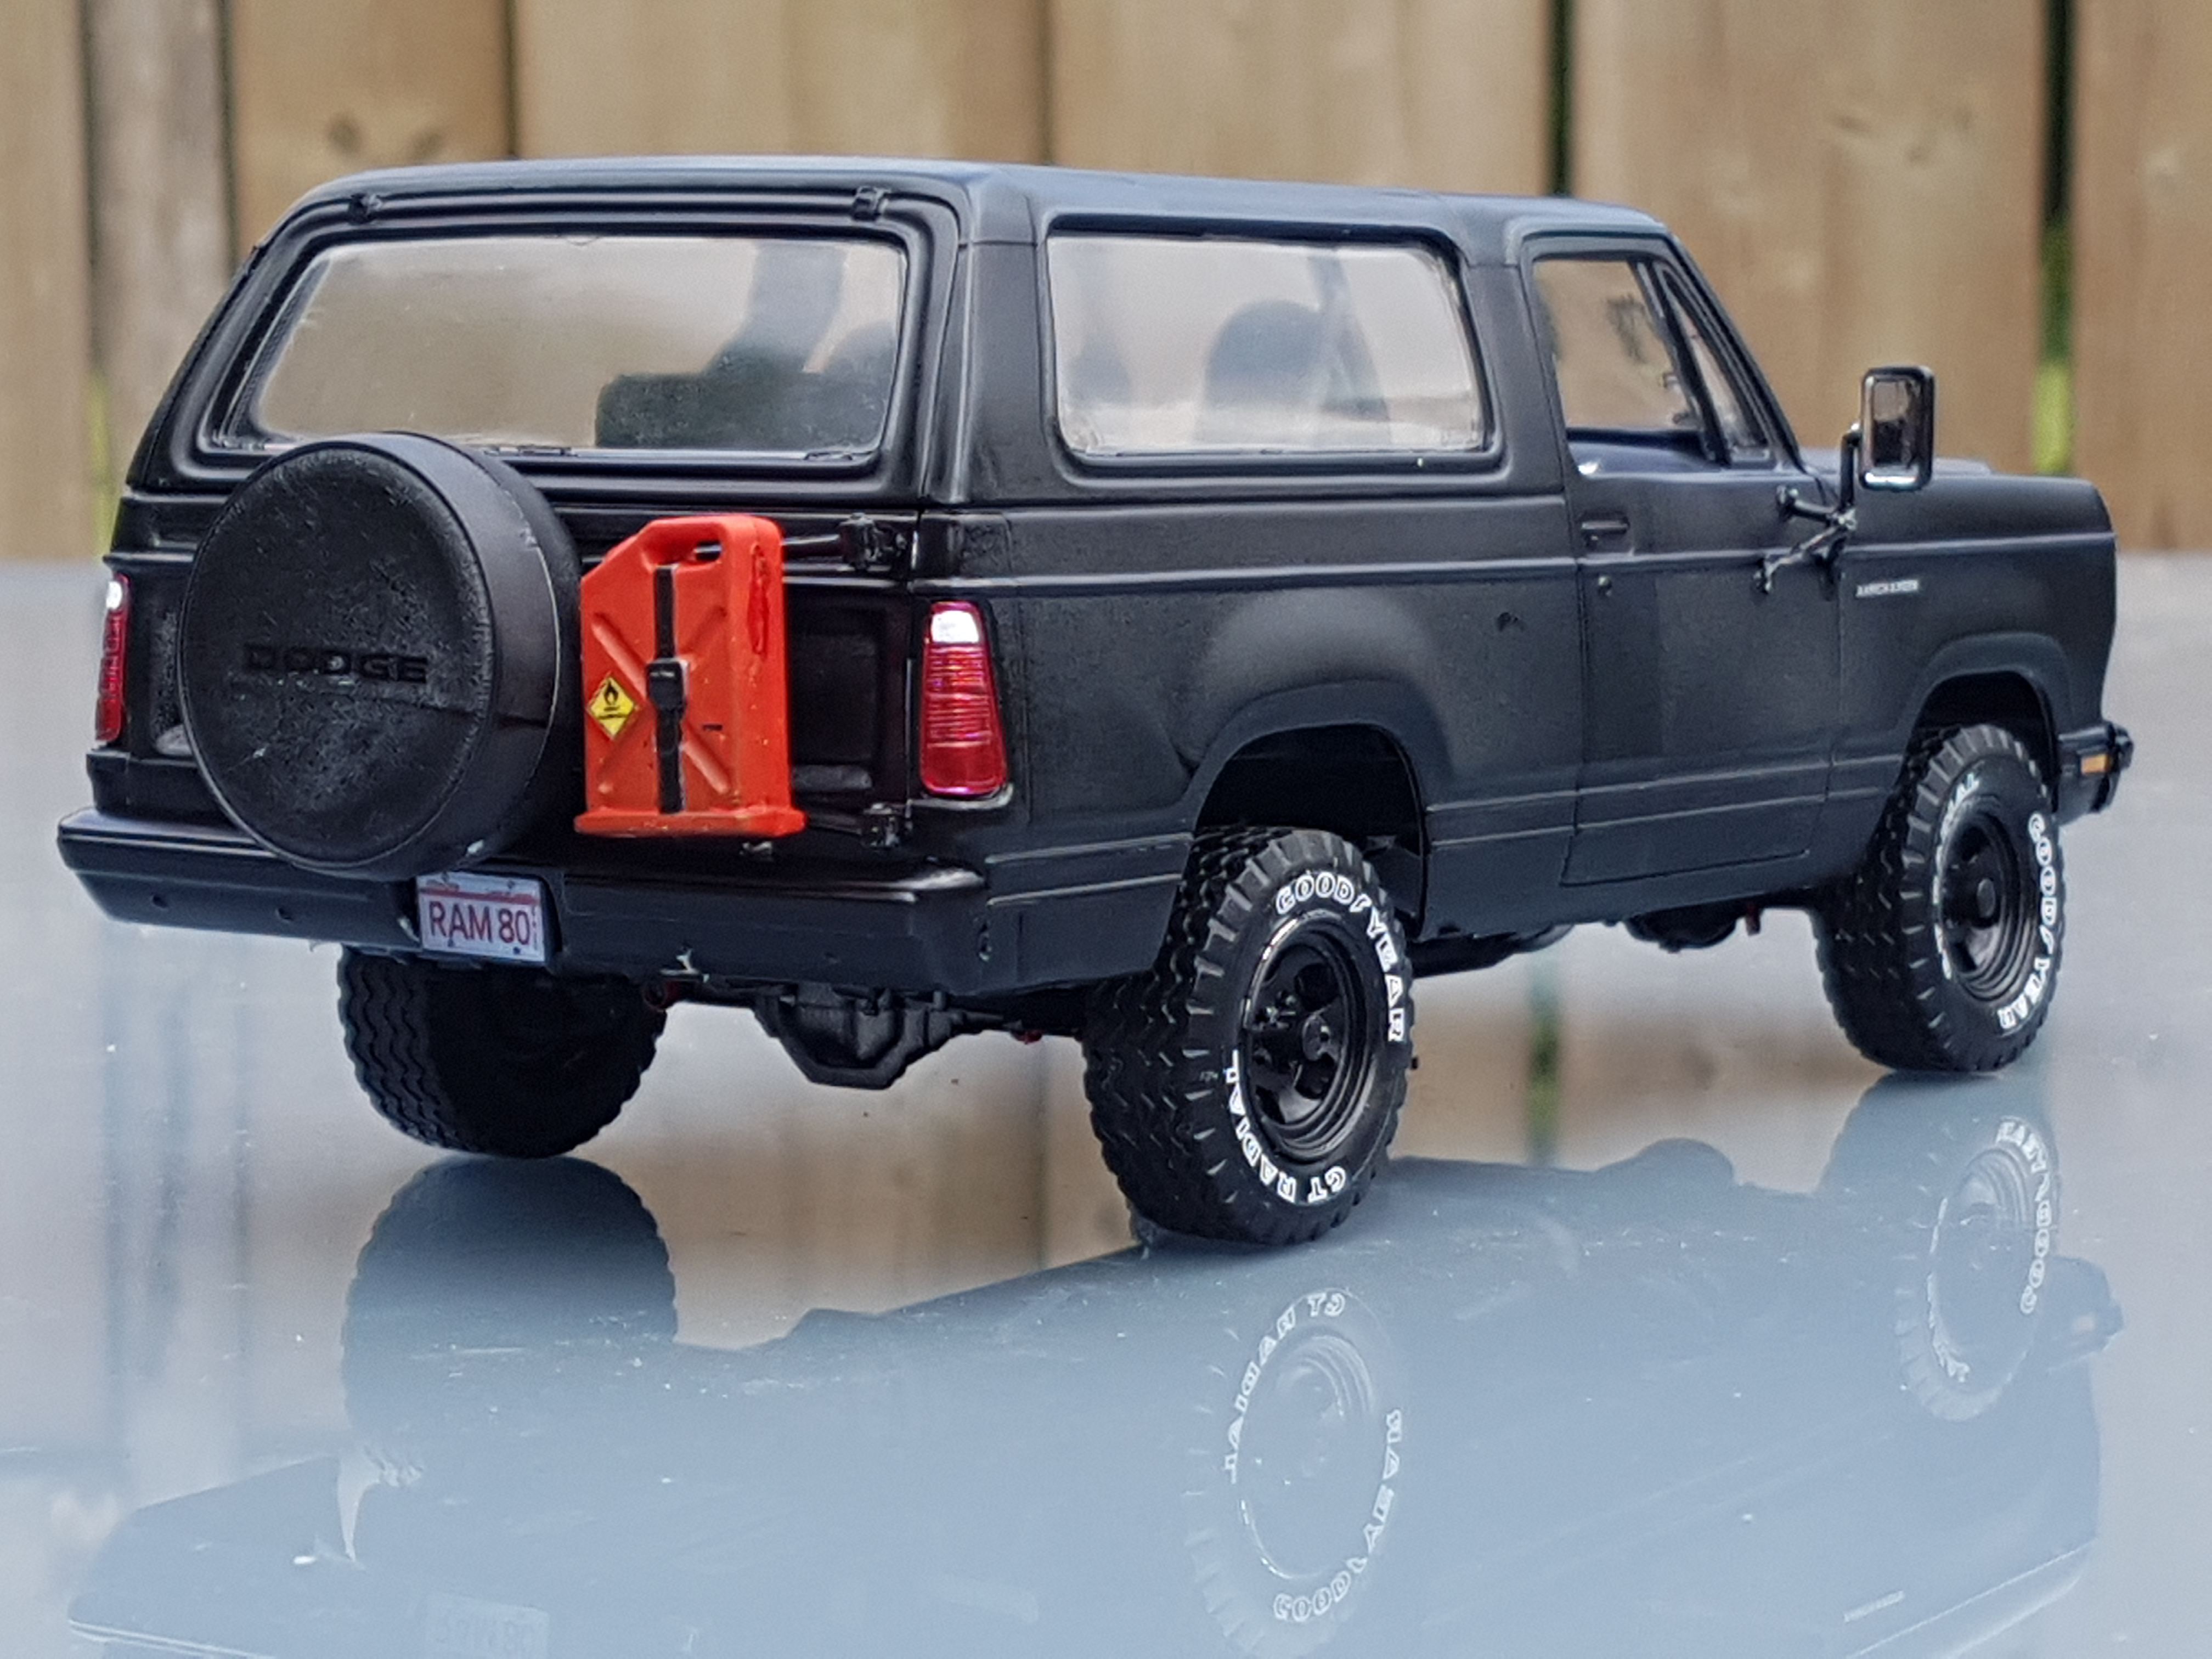 1980 Dodge Ramcharger Revell Rays Kits Truck Parts